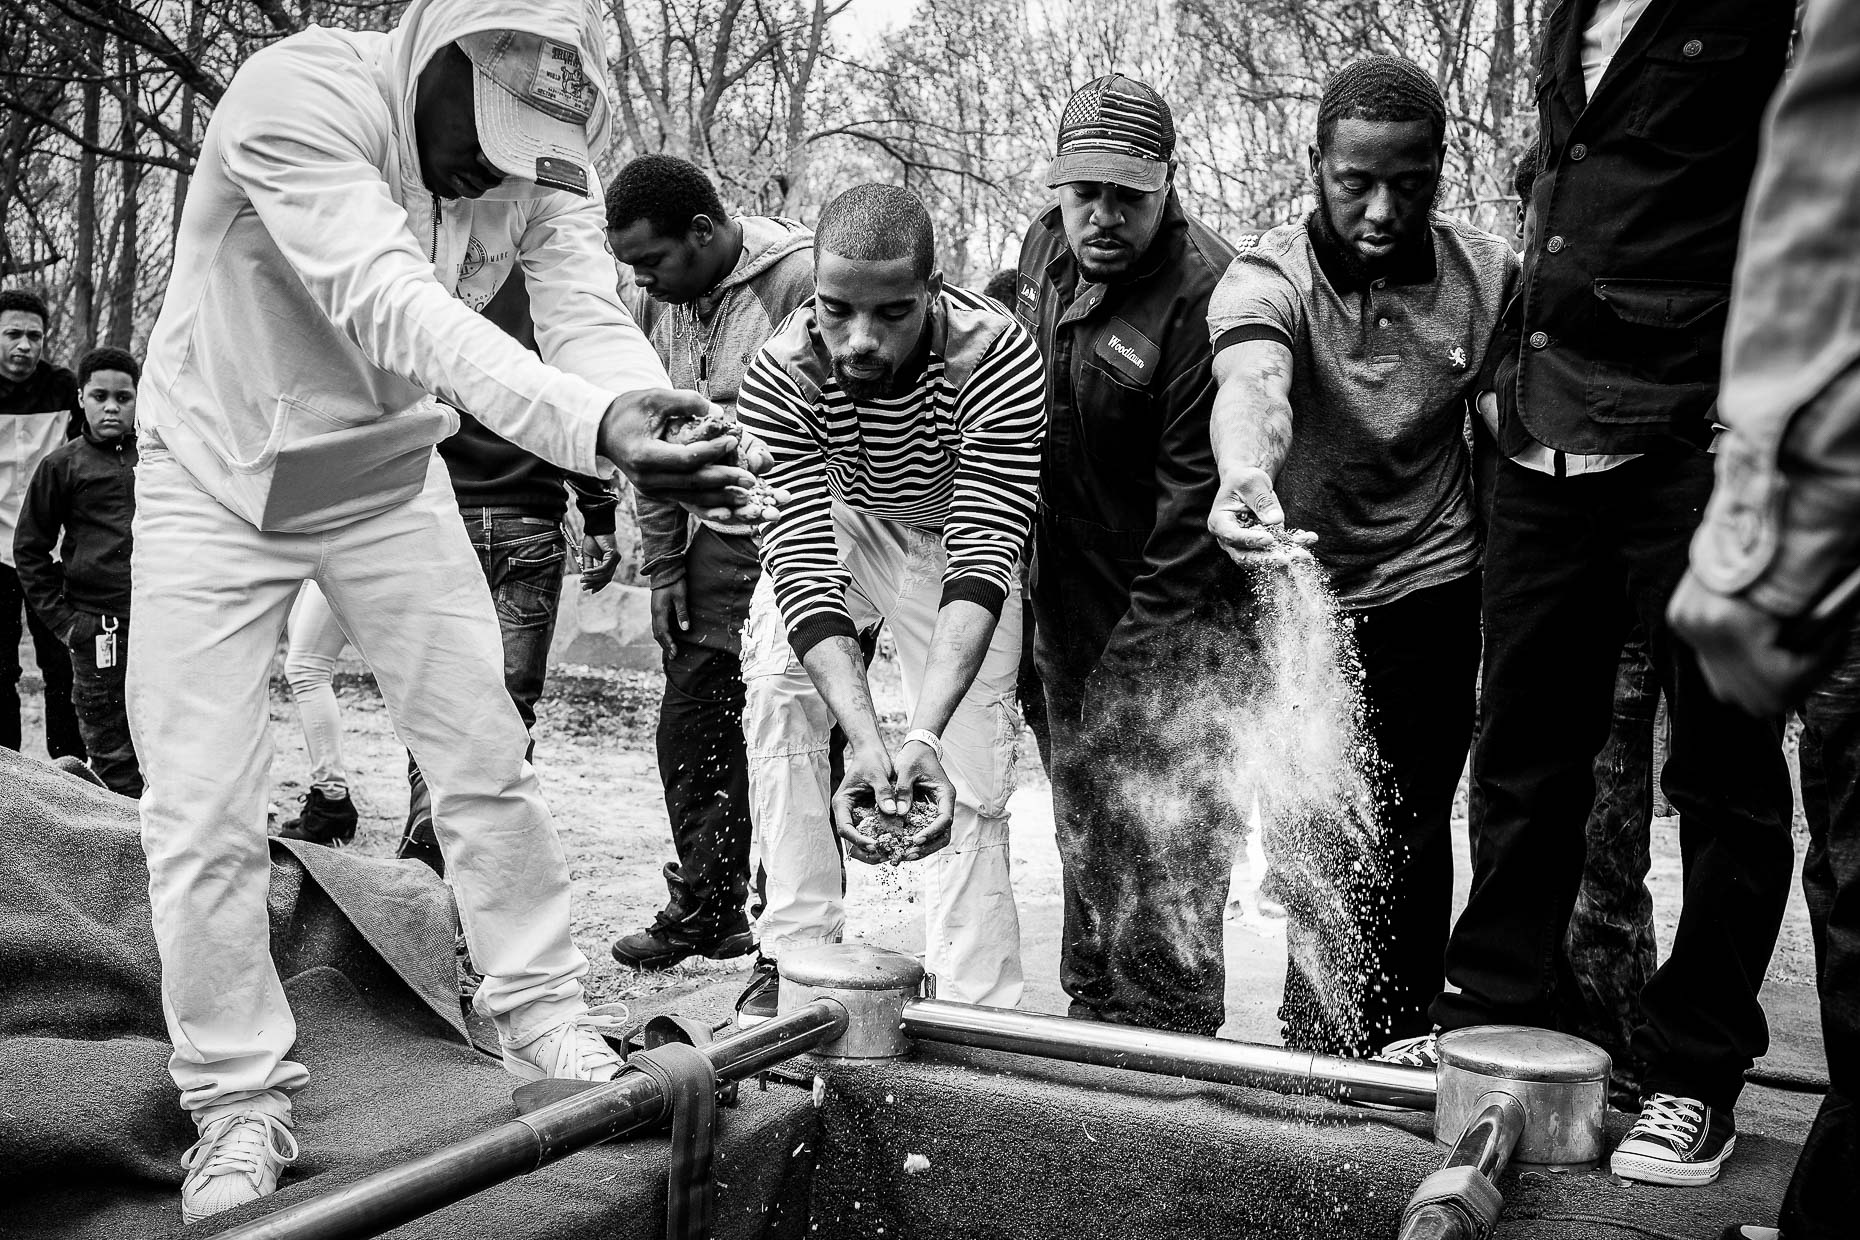 Baltimore Responds - The Baltimore Uprising - Photojournalism 20